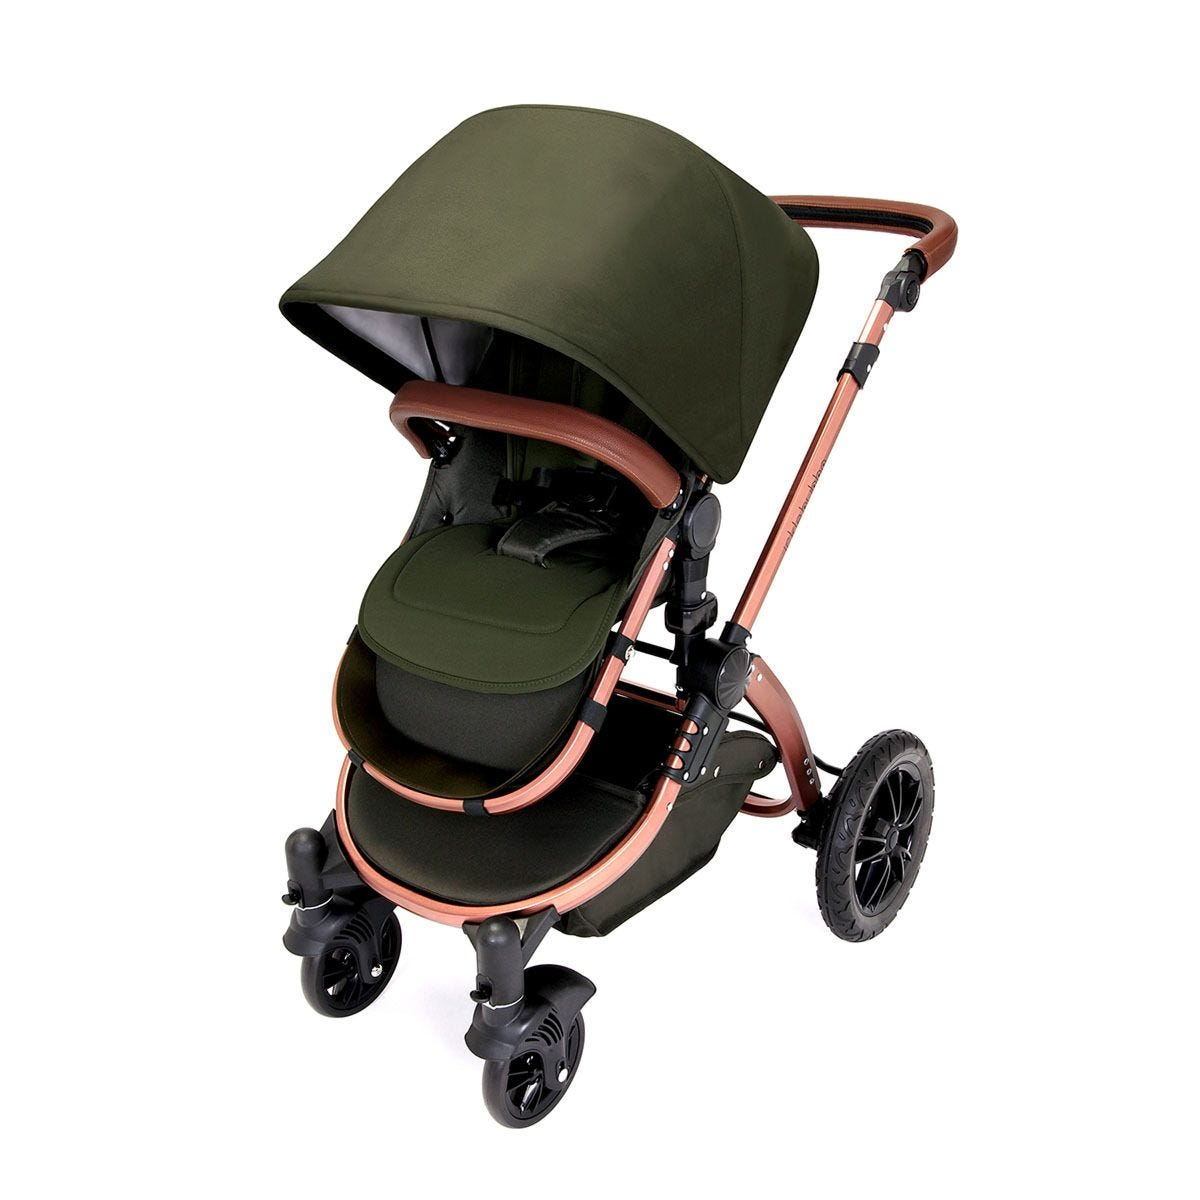 Ickle Bubba Stomp V4 2 in 1 Pushchair - Woodland on Bronze with Tan Handles